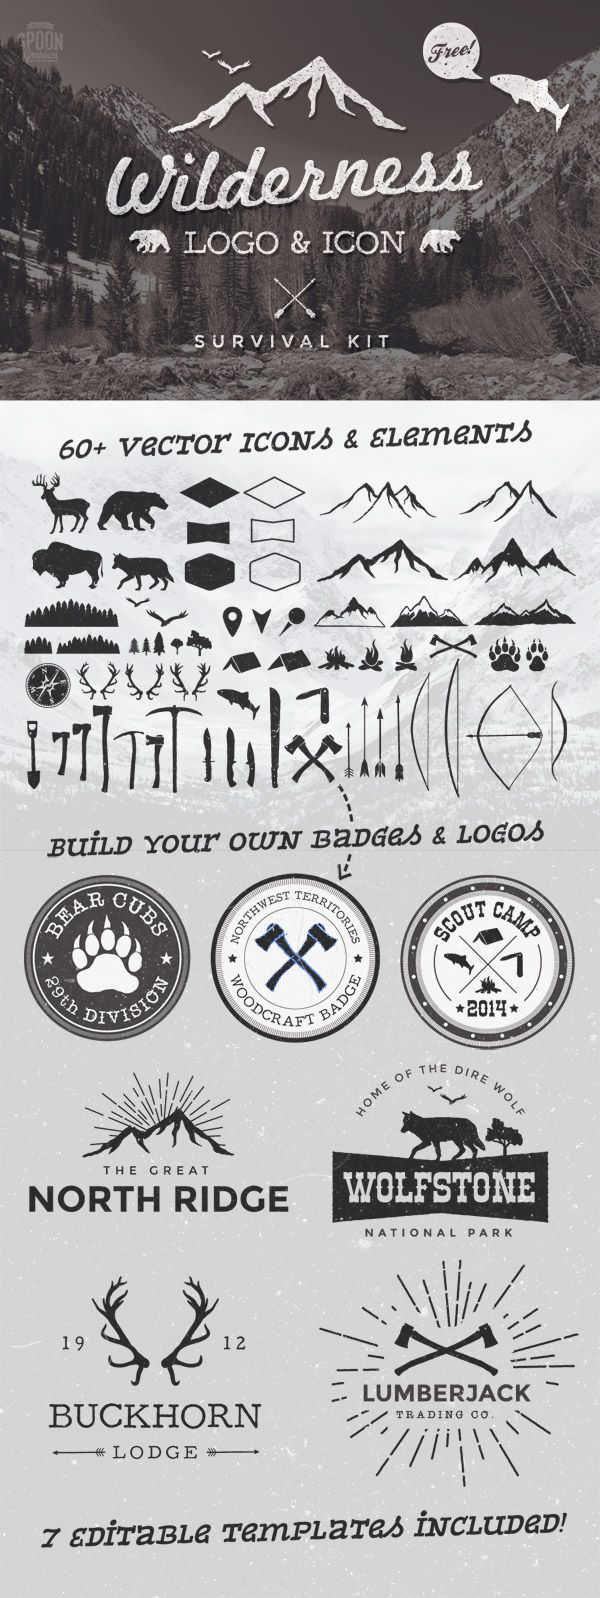 I've been busy drawing and tracing various vector graphics in order to create a comprehensive logo & icon kit for my latest free design resource. The Wilderness Survival Kit is a collection of 60+ vector graphics and 7+ ready made editable logo templates based on the popular theme of the great outdoors. Easily build logos, …